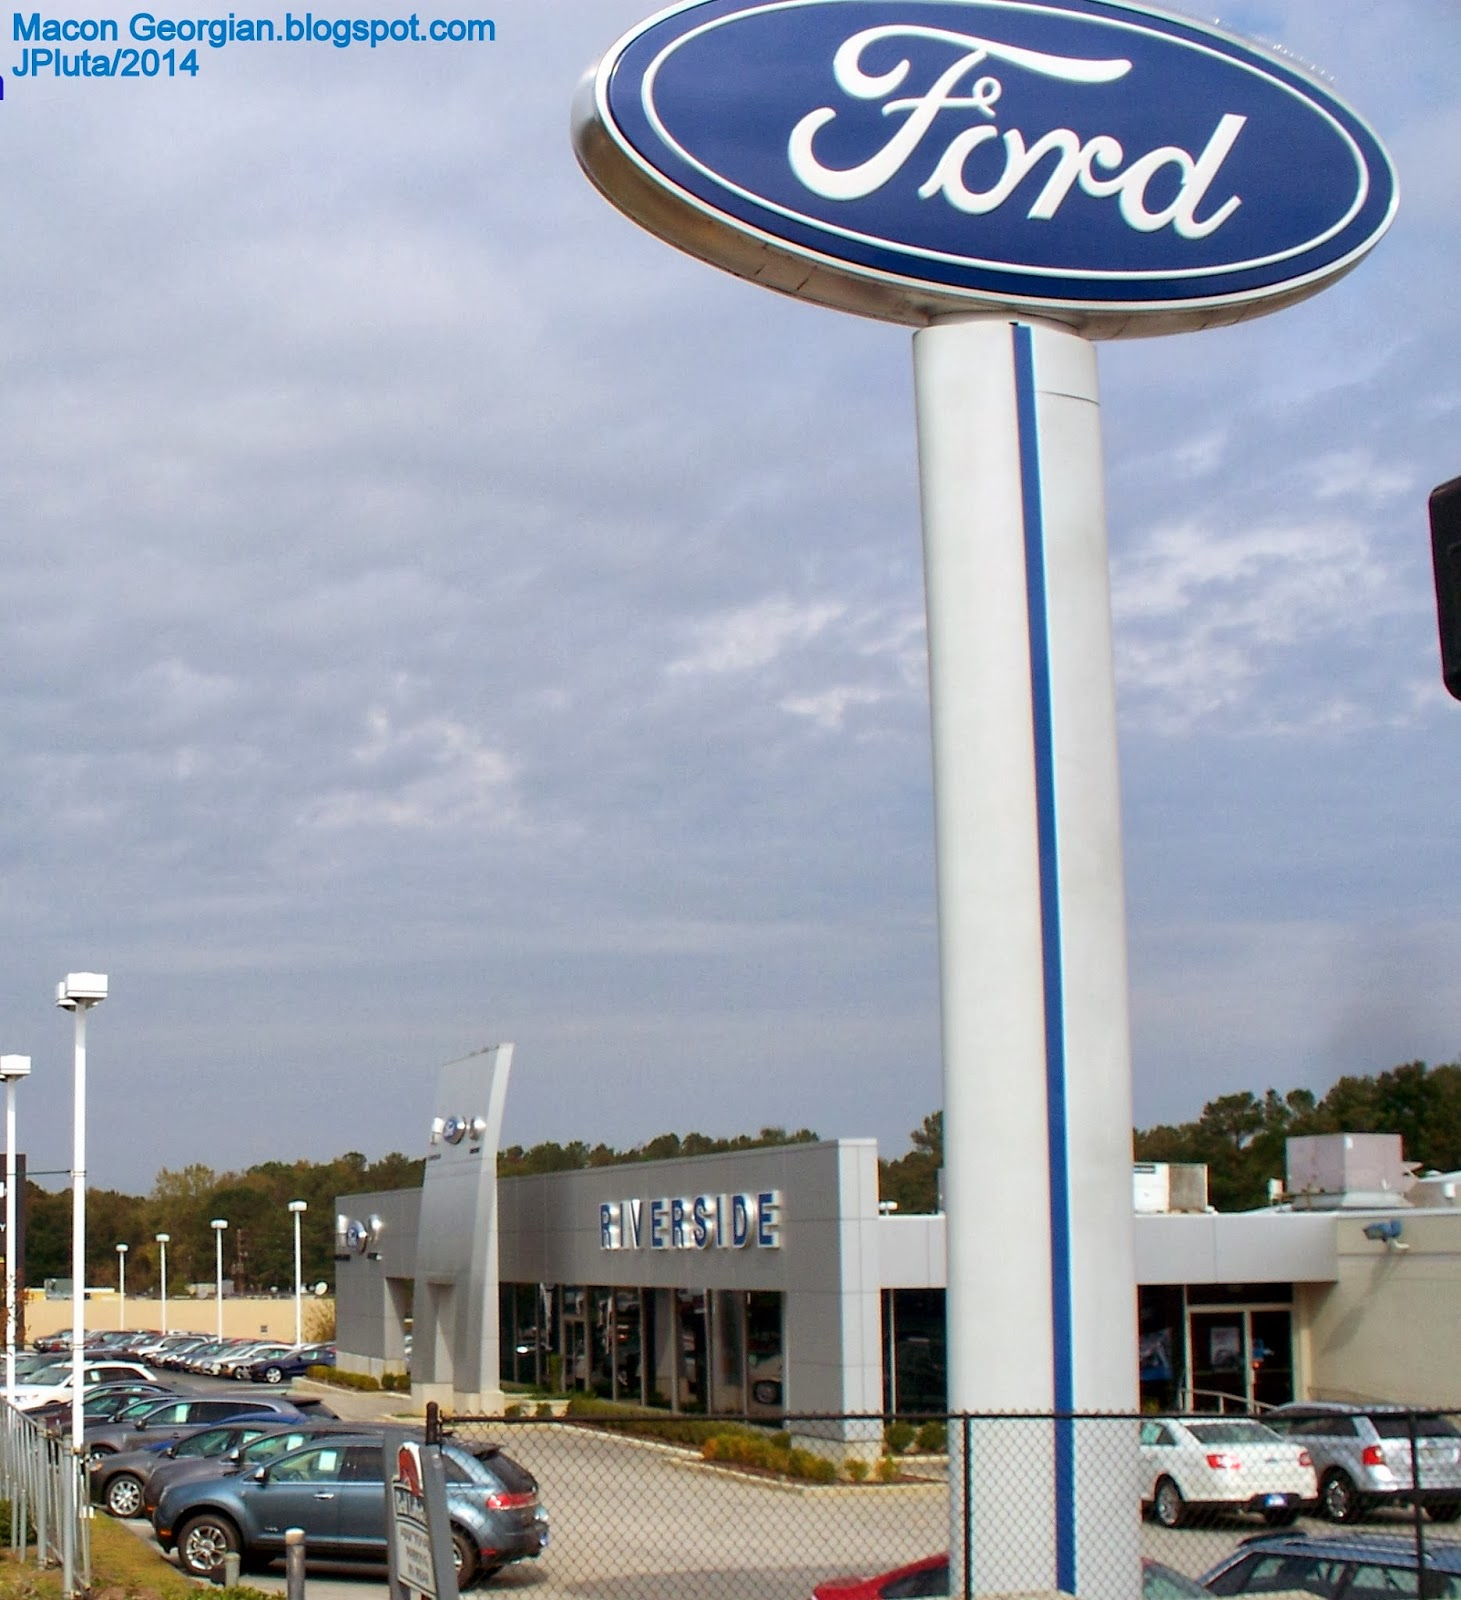 Riverside Ford Macon >> Riverside Ford Lincoln Inc Ford Dealership In Macon Ga | Autos Post